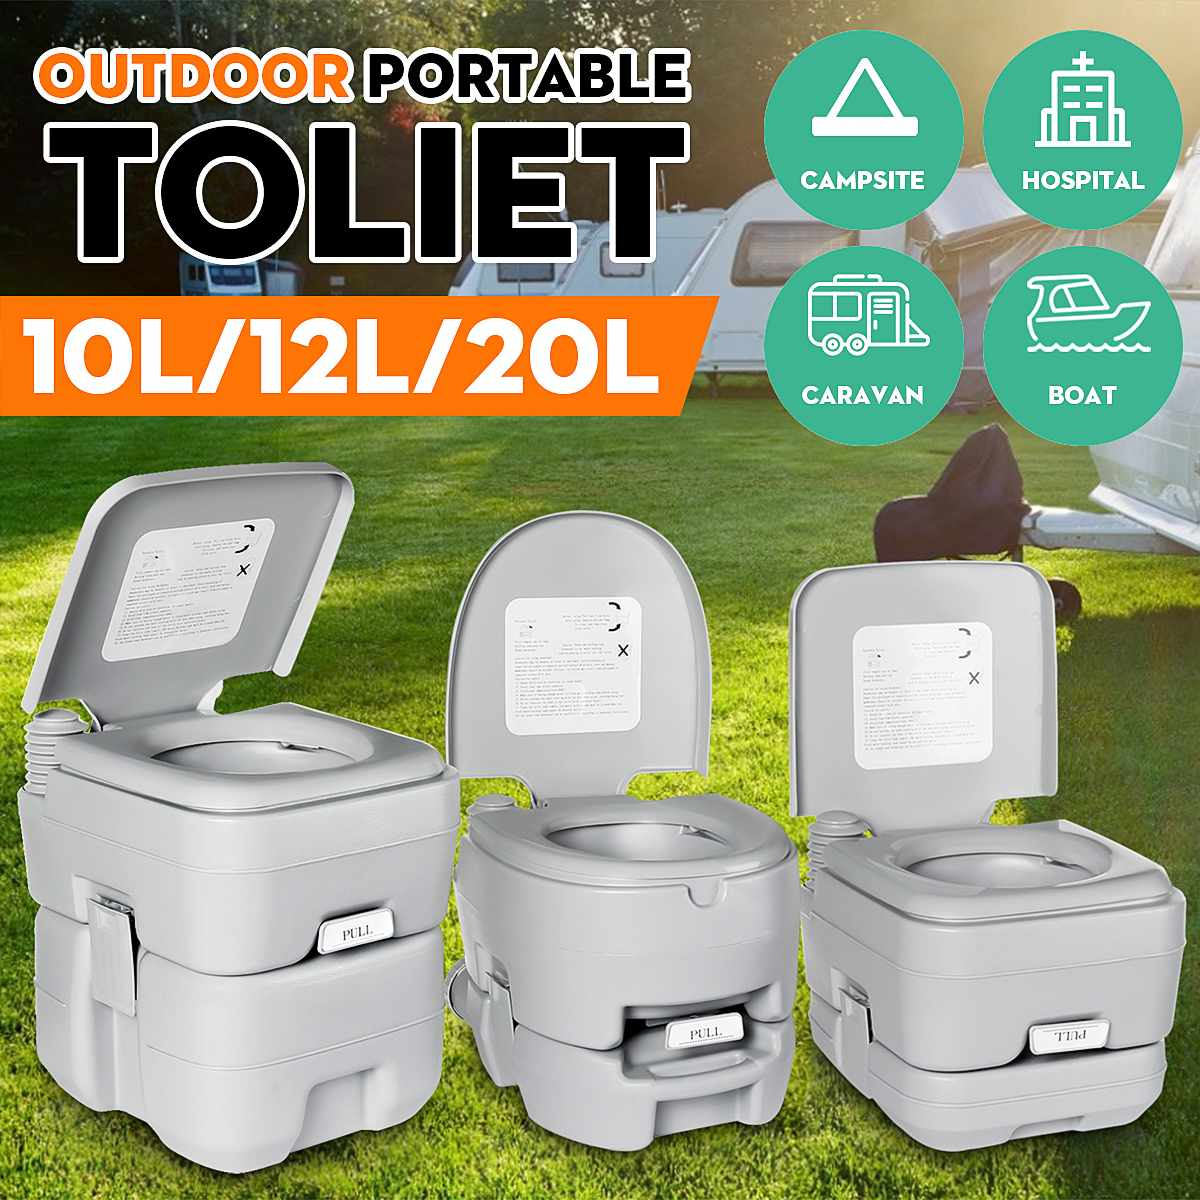 20L//10L Portable Toilet Camping Caravan Potty Restroom For Travel Outdoor Hiking